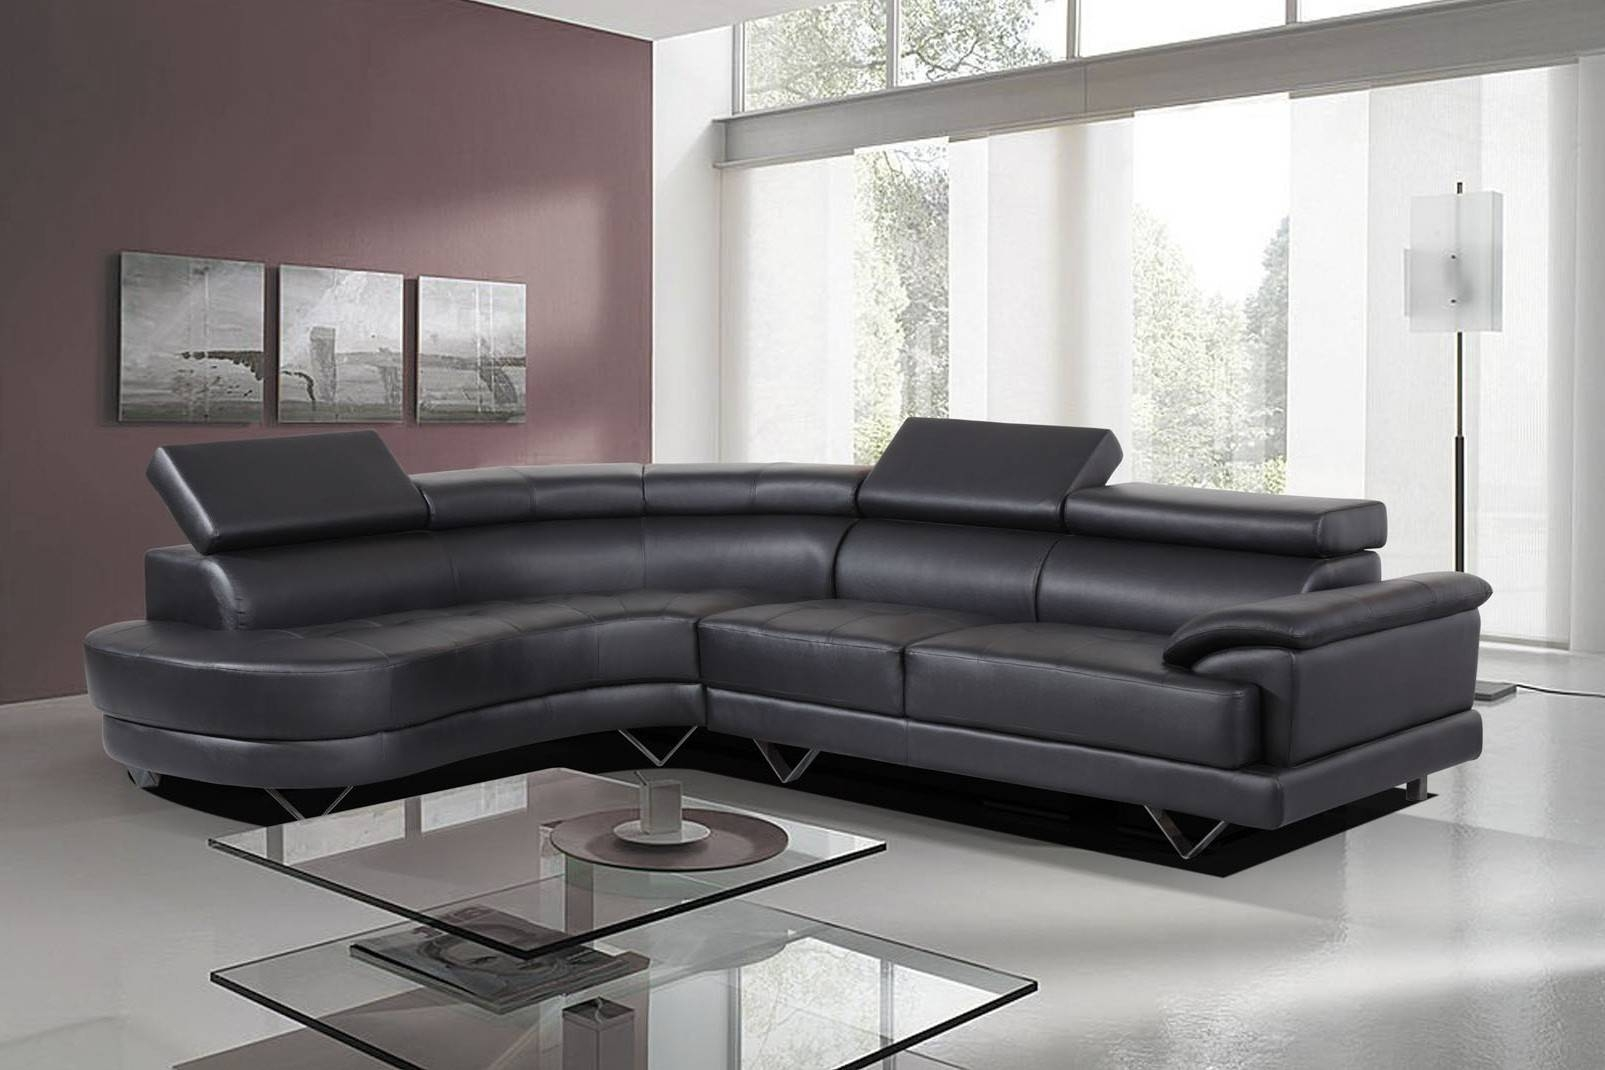 Leather Corner Sofa Second Hand | Tehranmix Decoration within Large Black Leather Corner Sofas (Image 15 of 30)